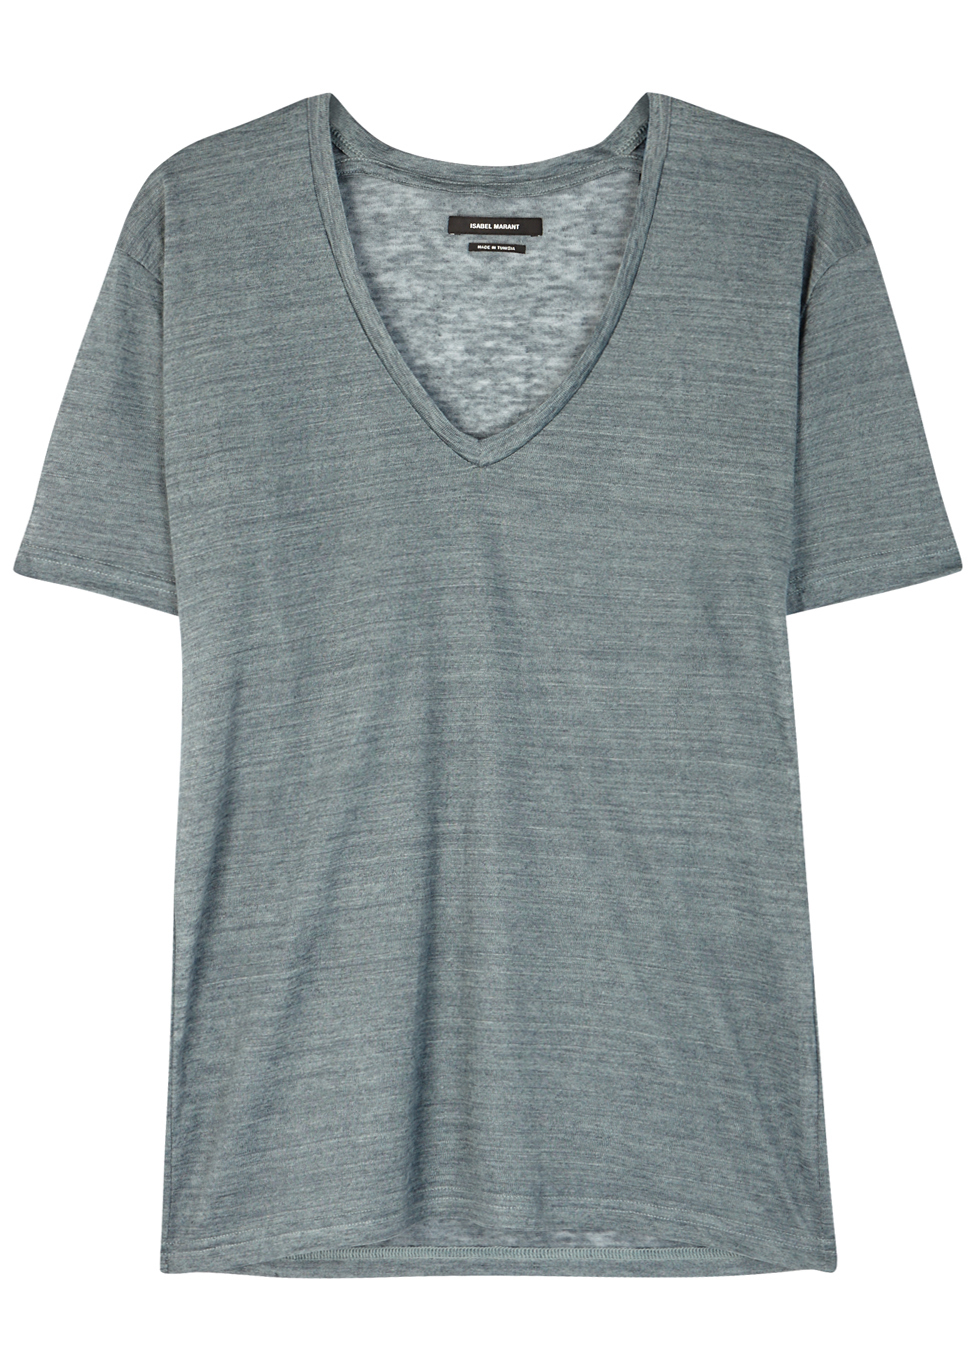 Maree Teal Slubbed Linen T Shirt - neckline: v-neck; pattern: plain; style: t-shirt; predominant colour: mid grey; occasions: casual; length: standard; fibres: linen - 100%; fit: body skimming; sleeve length: short sleeve; sleeve style: standard; texture group: linen; pattern type: fabric; wardrobe: basic; season: a/w 2016